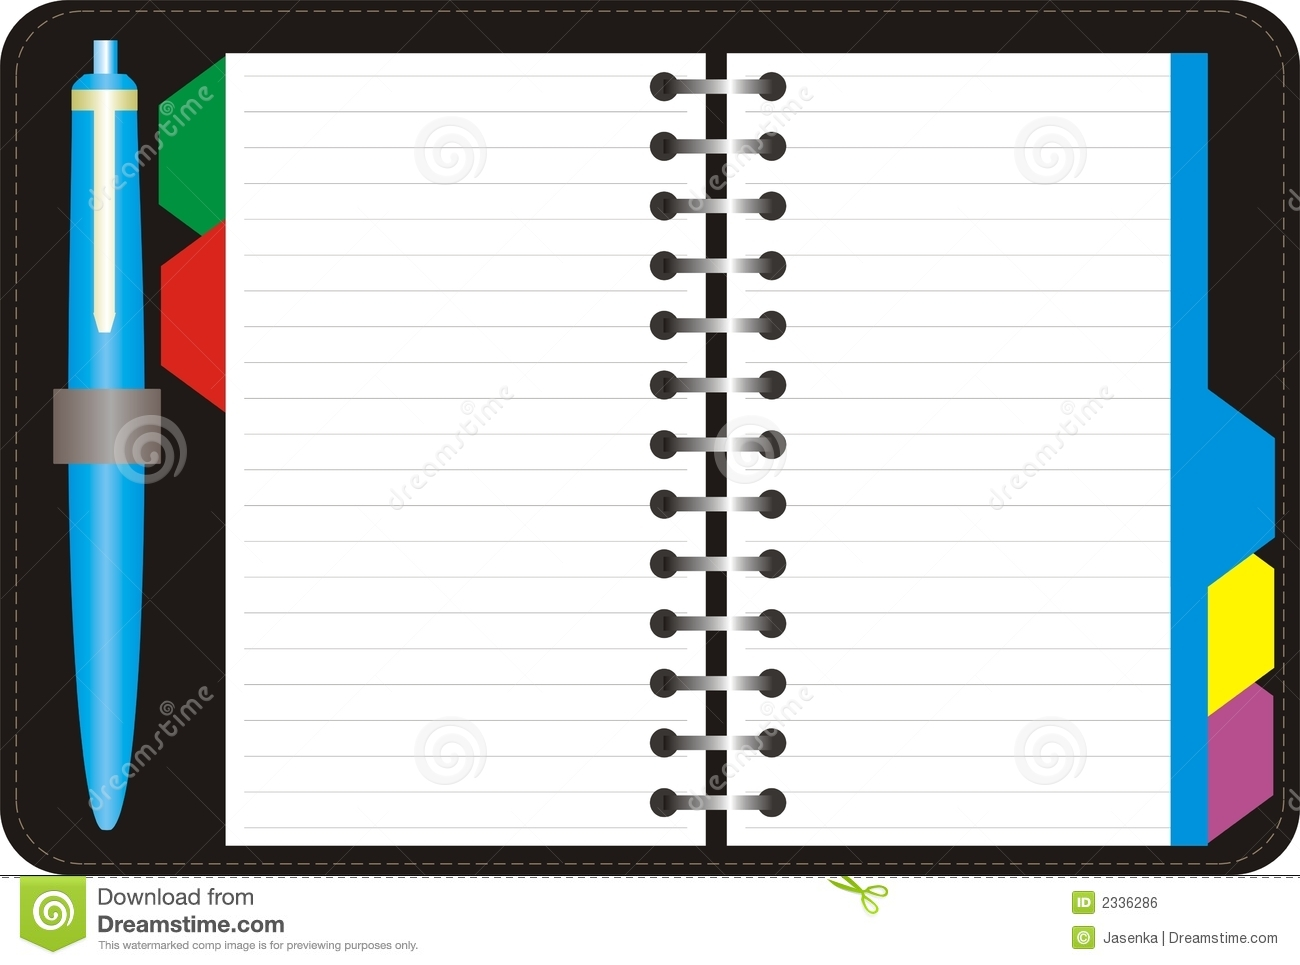 Date clipart appointment book Appointment%20clipart Images Panda Clipart Free